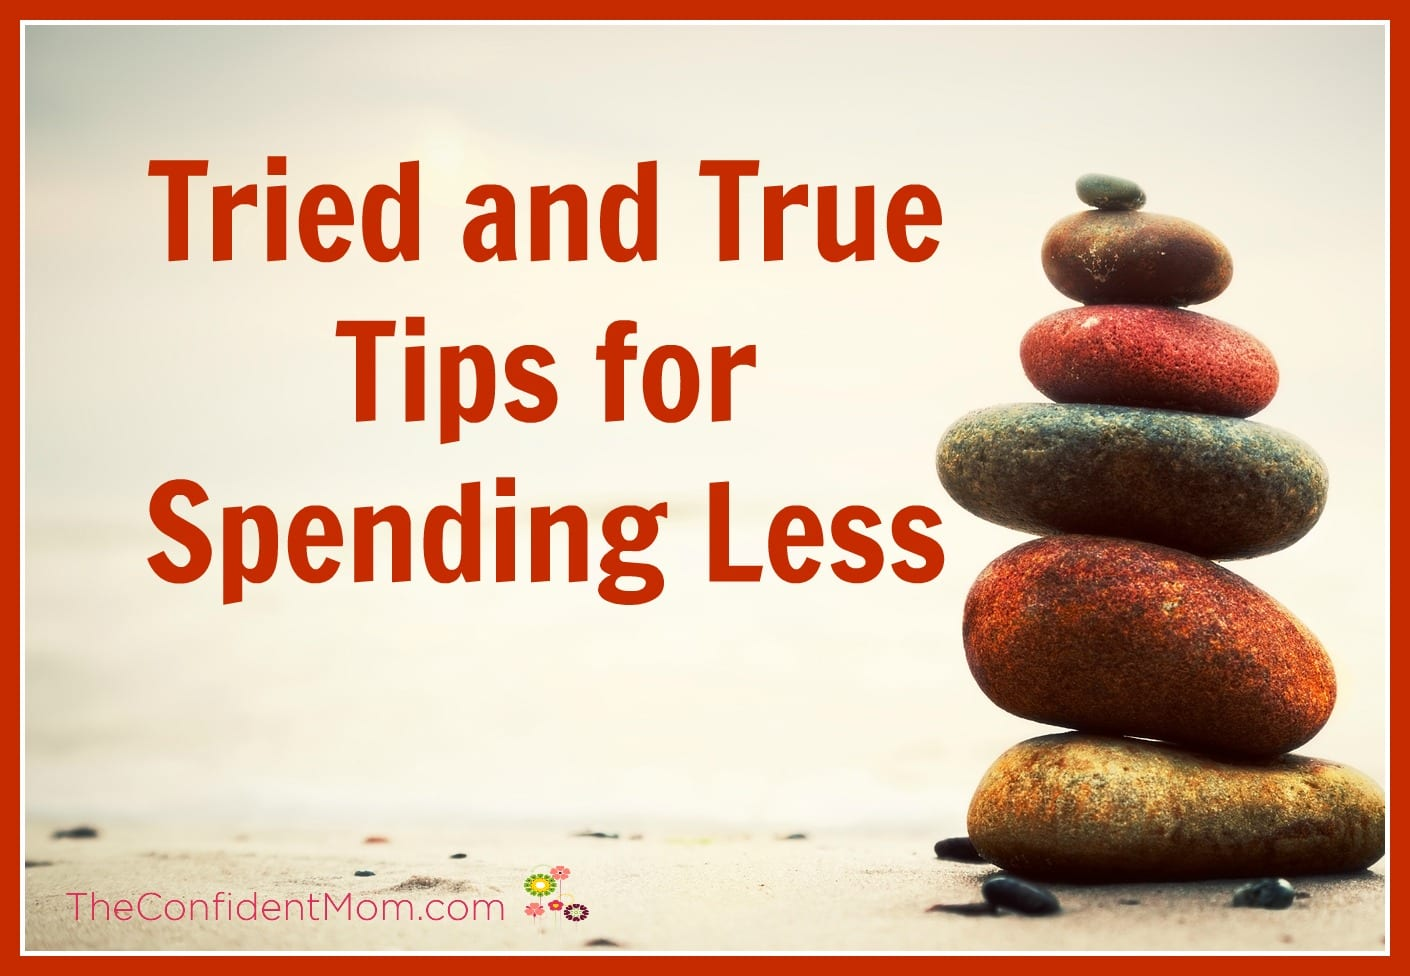 Tried and True Tips for Spending Less